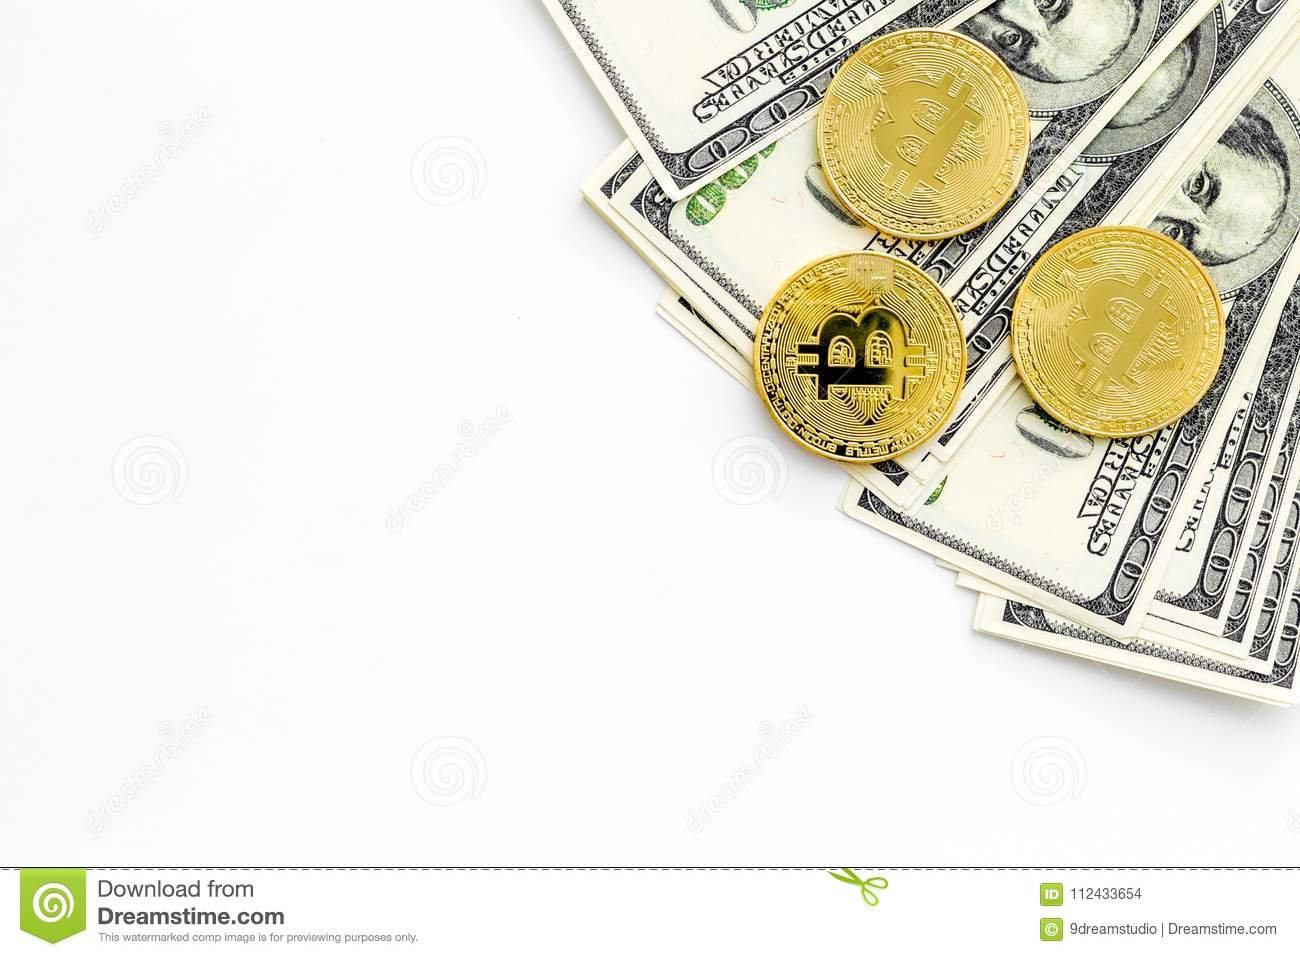 where to buy and sell digital currency